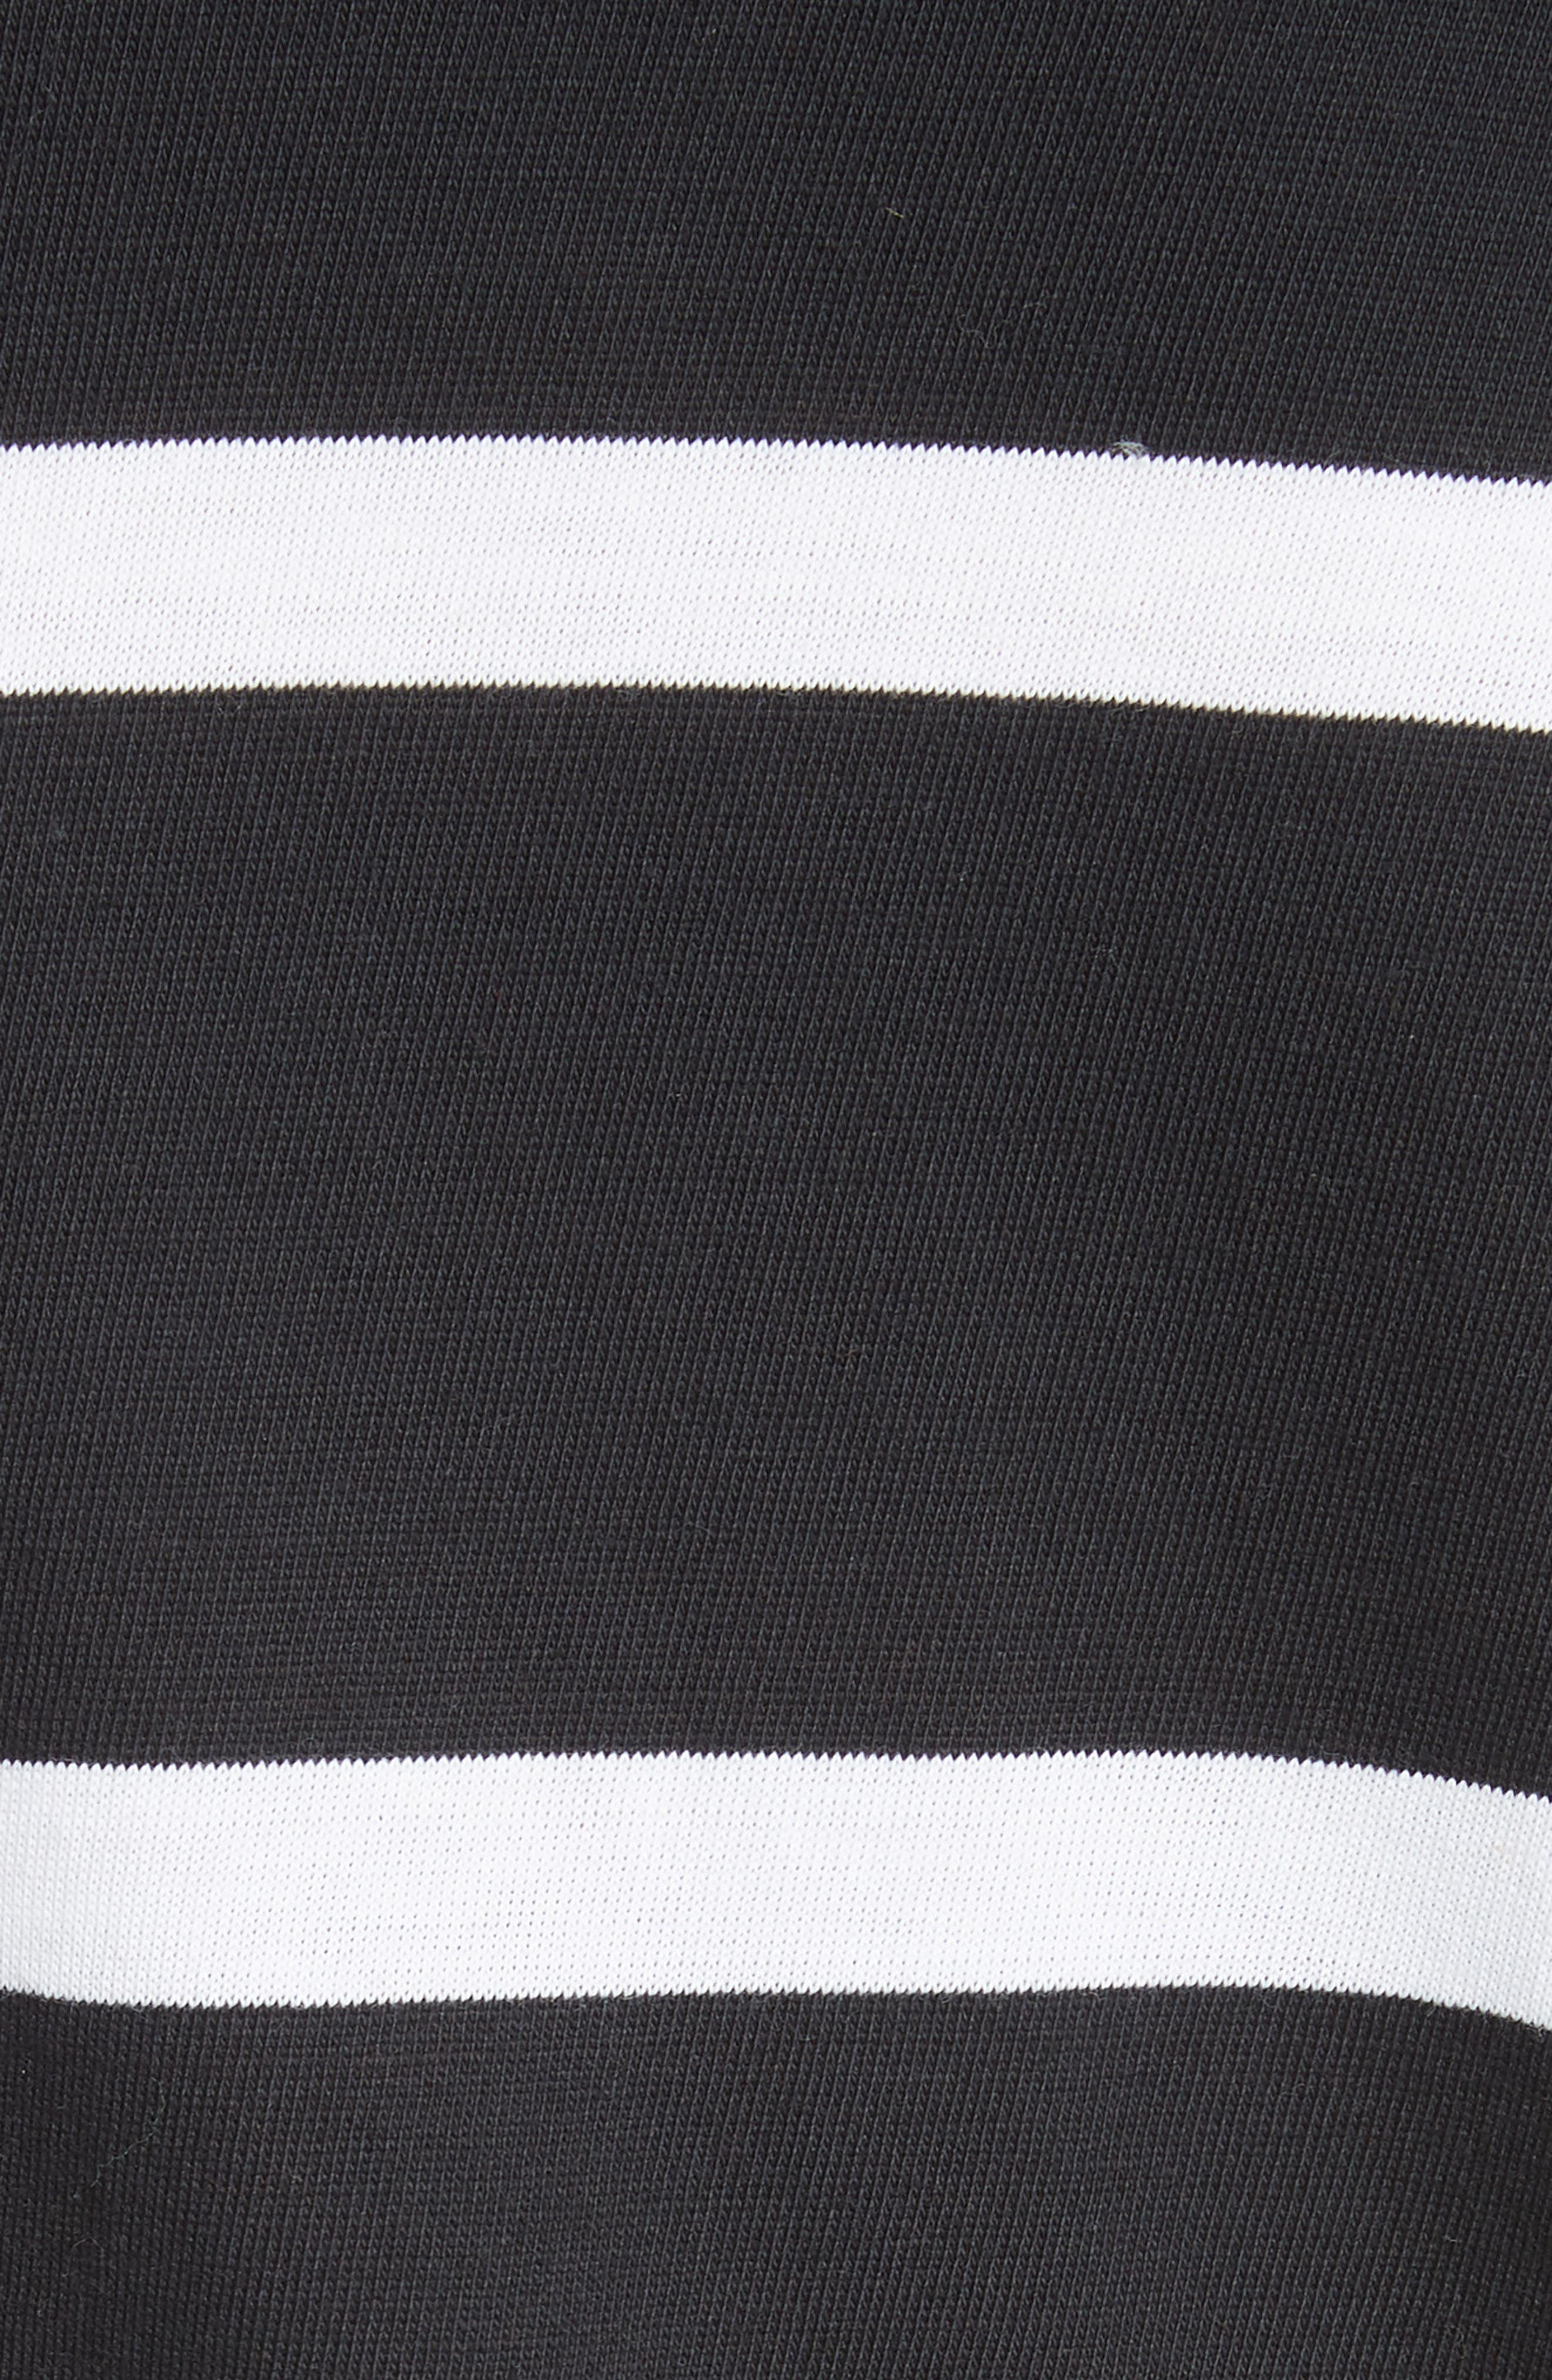 Upstate Stripe Tee,                             Alternate thumbnail 5, color,                             Onyx Combo